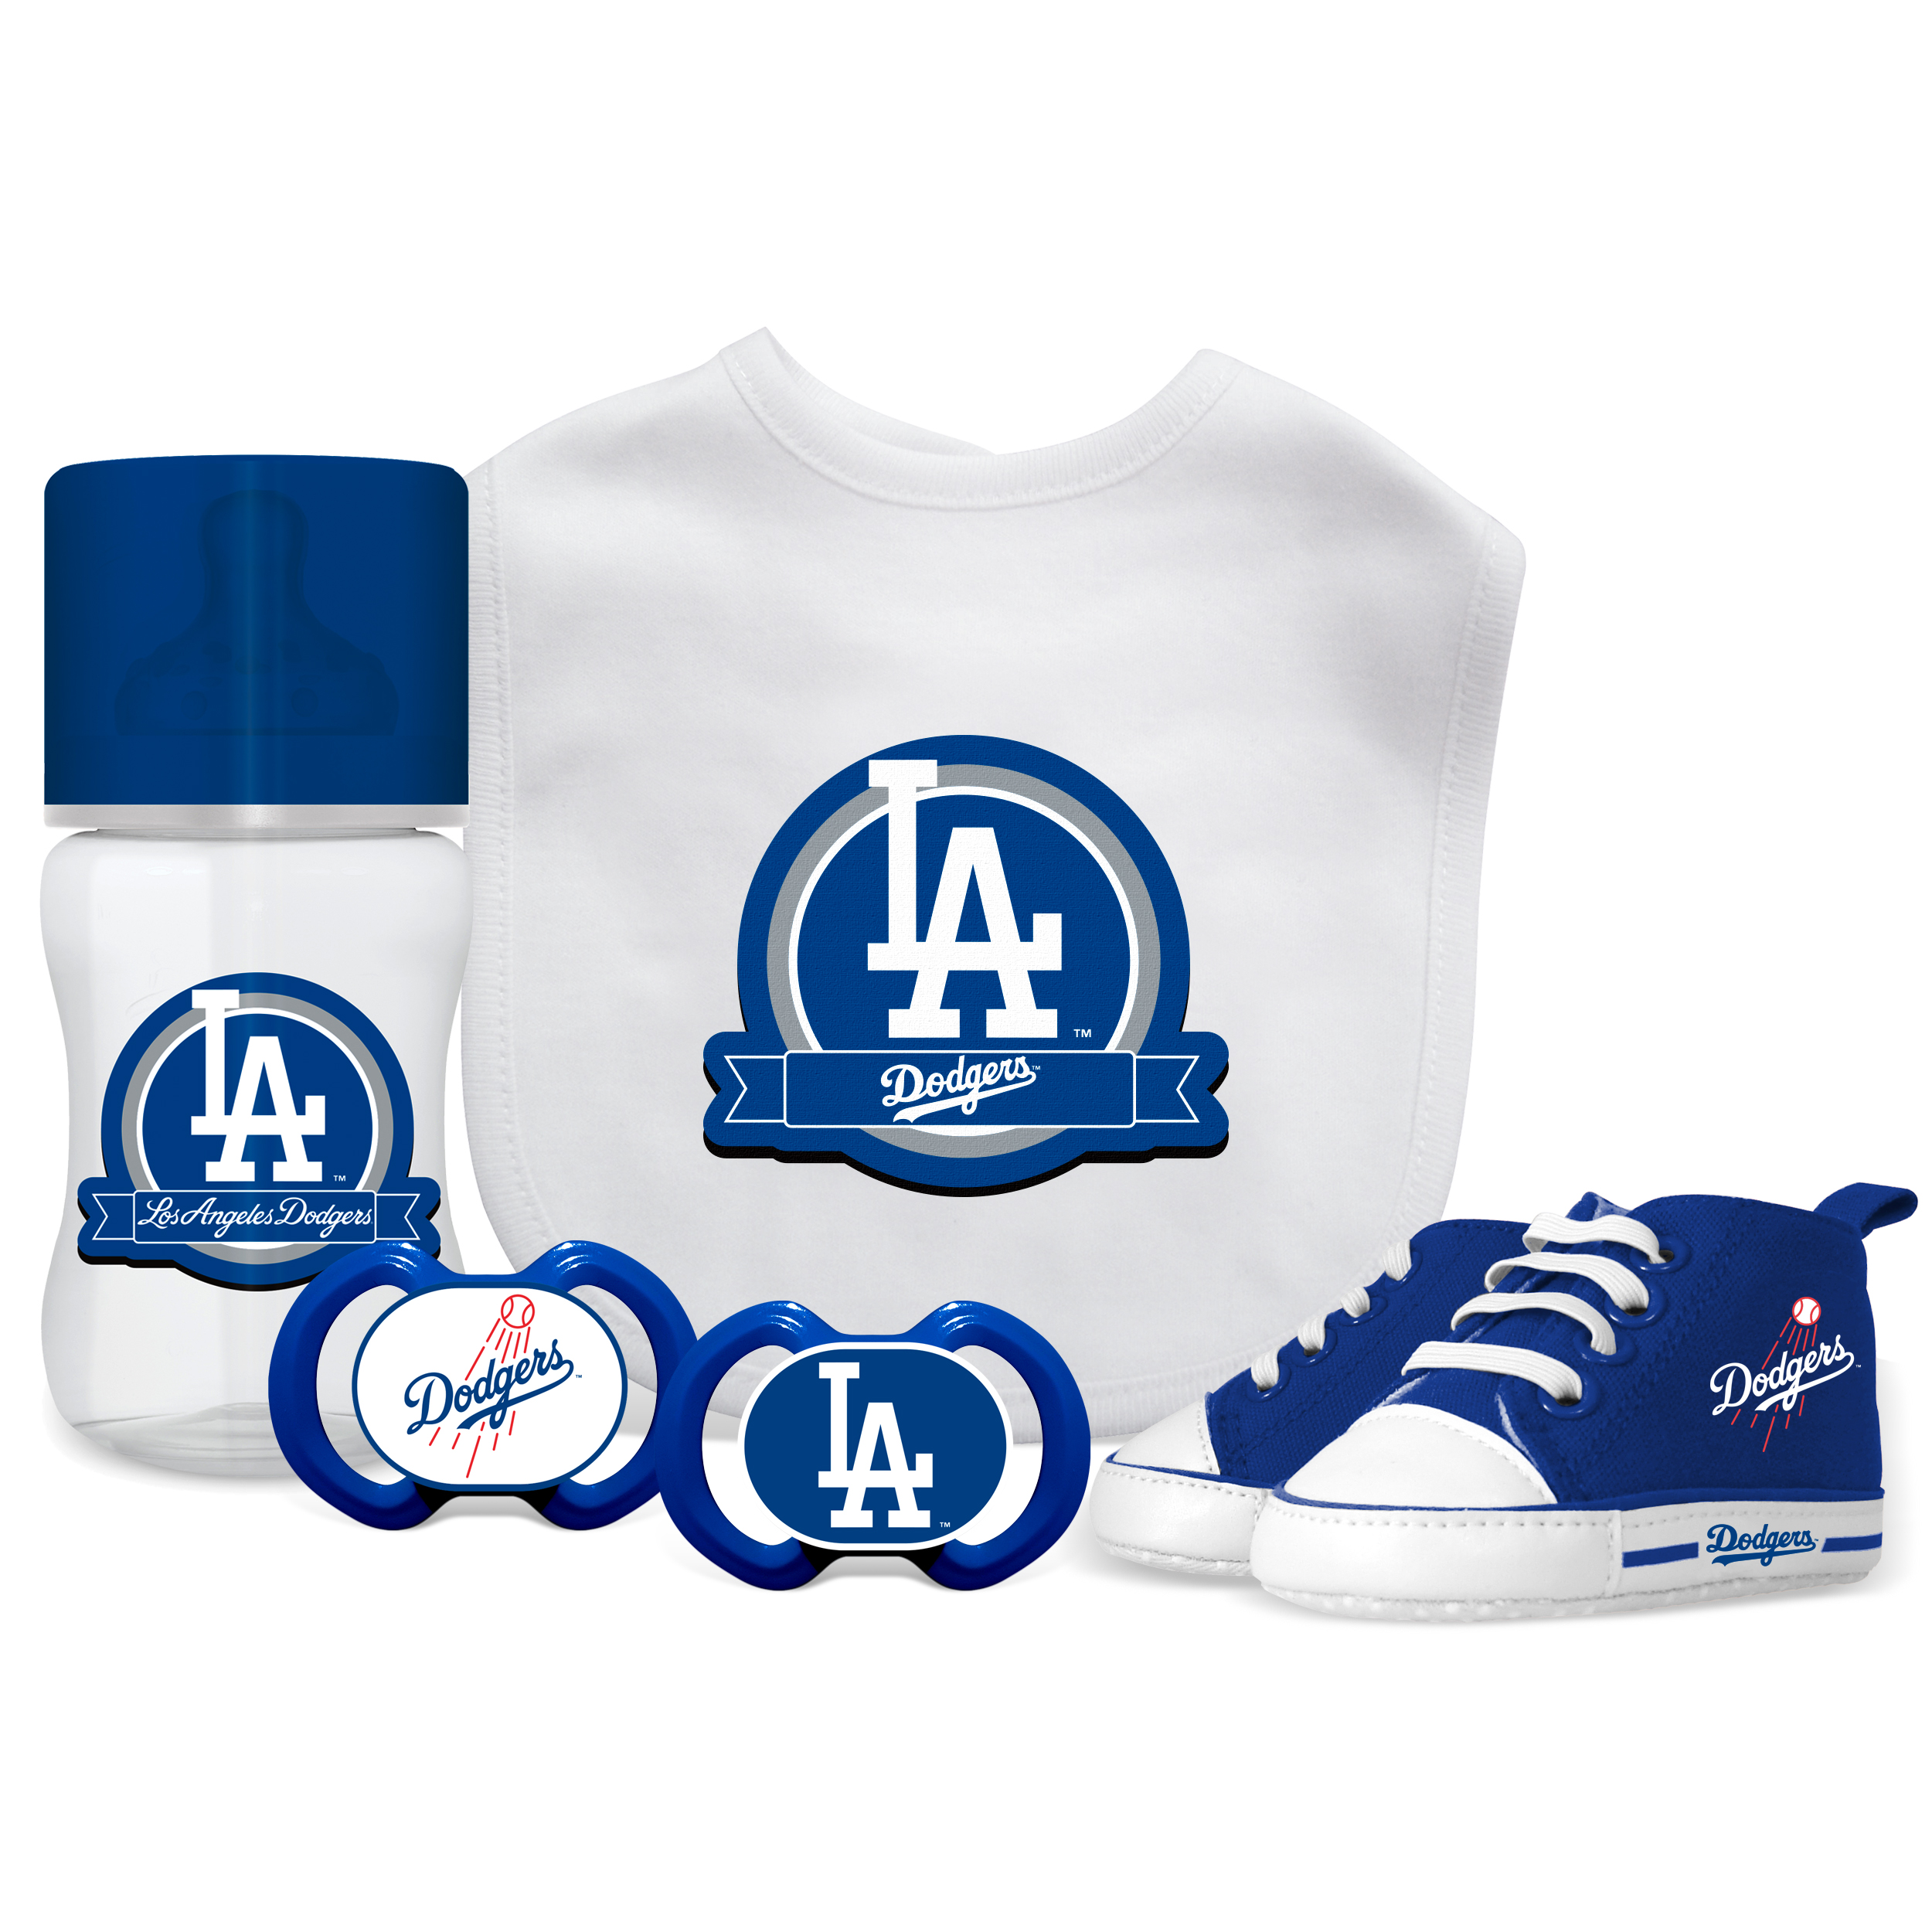 MLB Los Angeles Dodgers 5-Piece Baby Gift Set